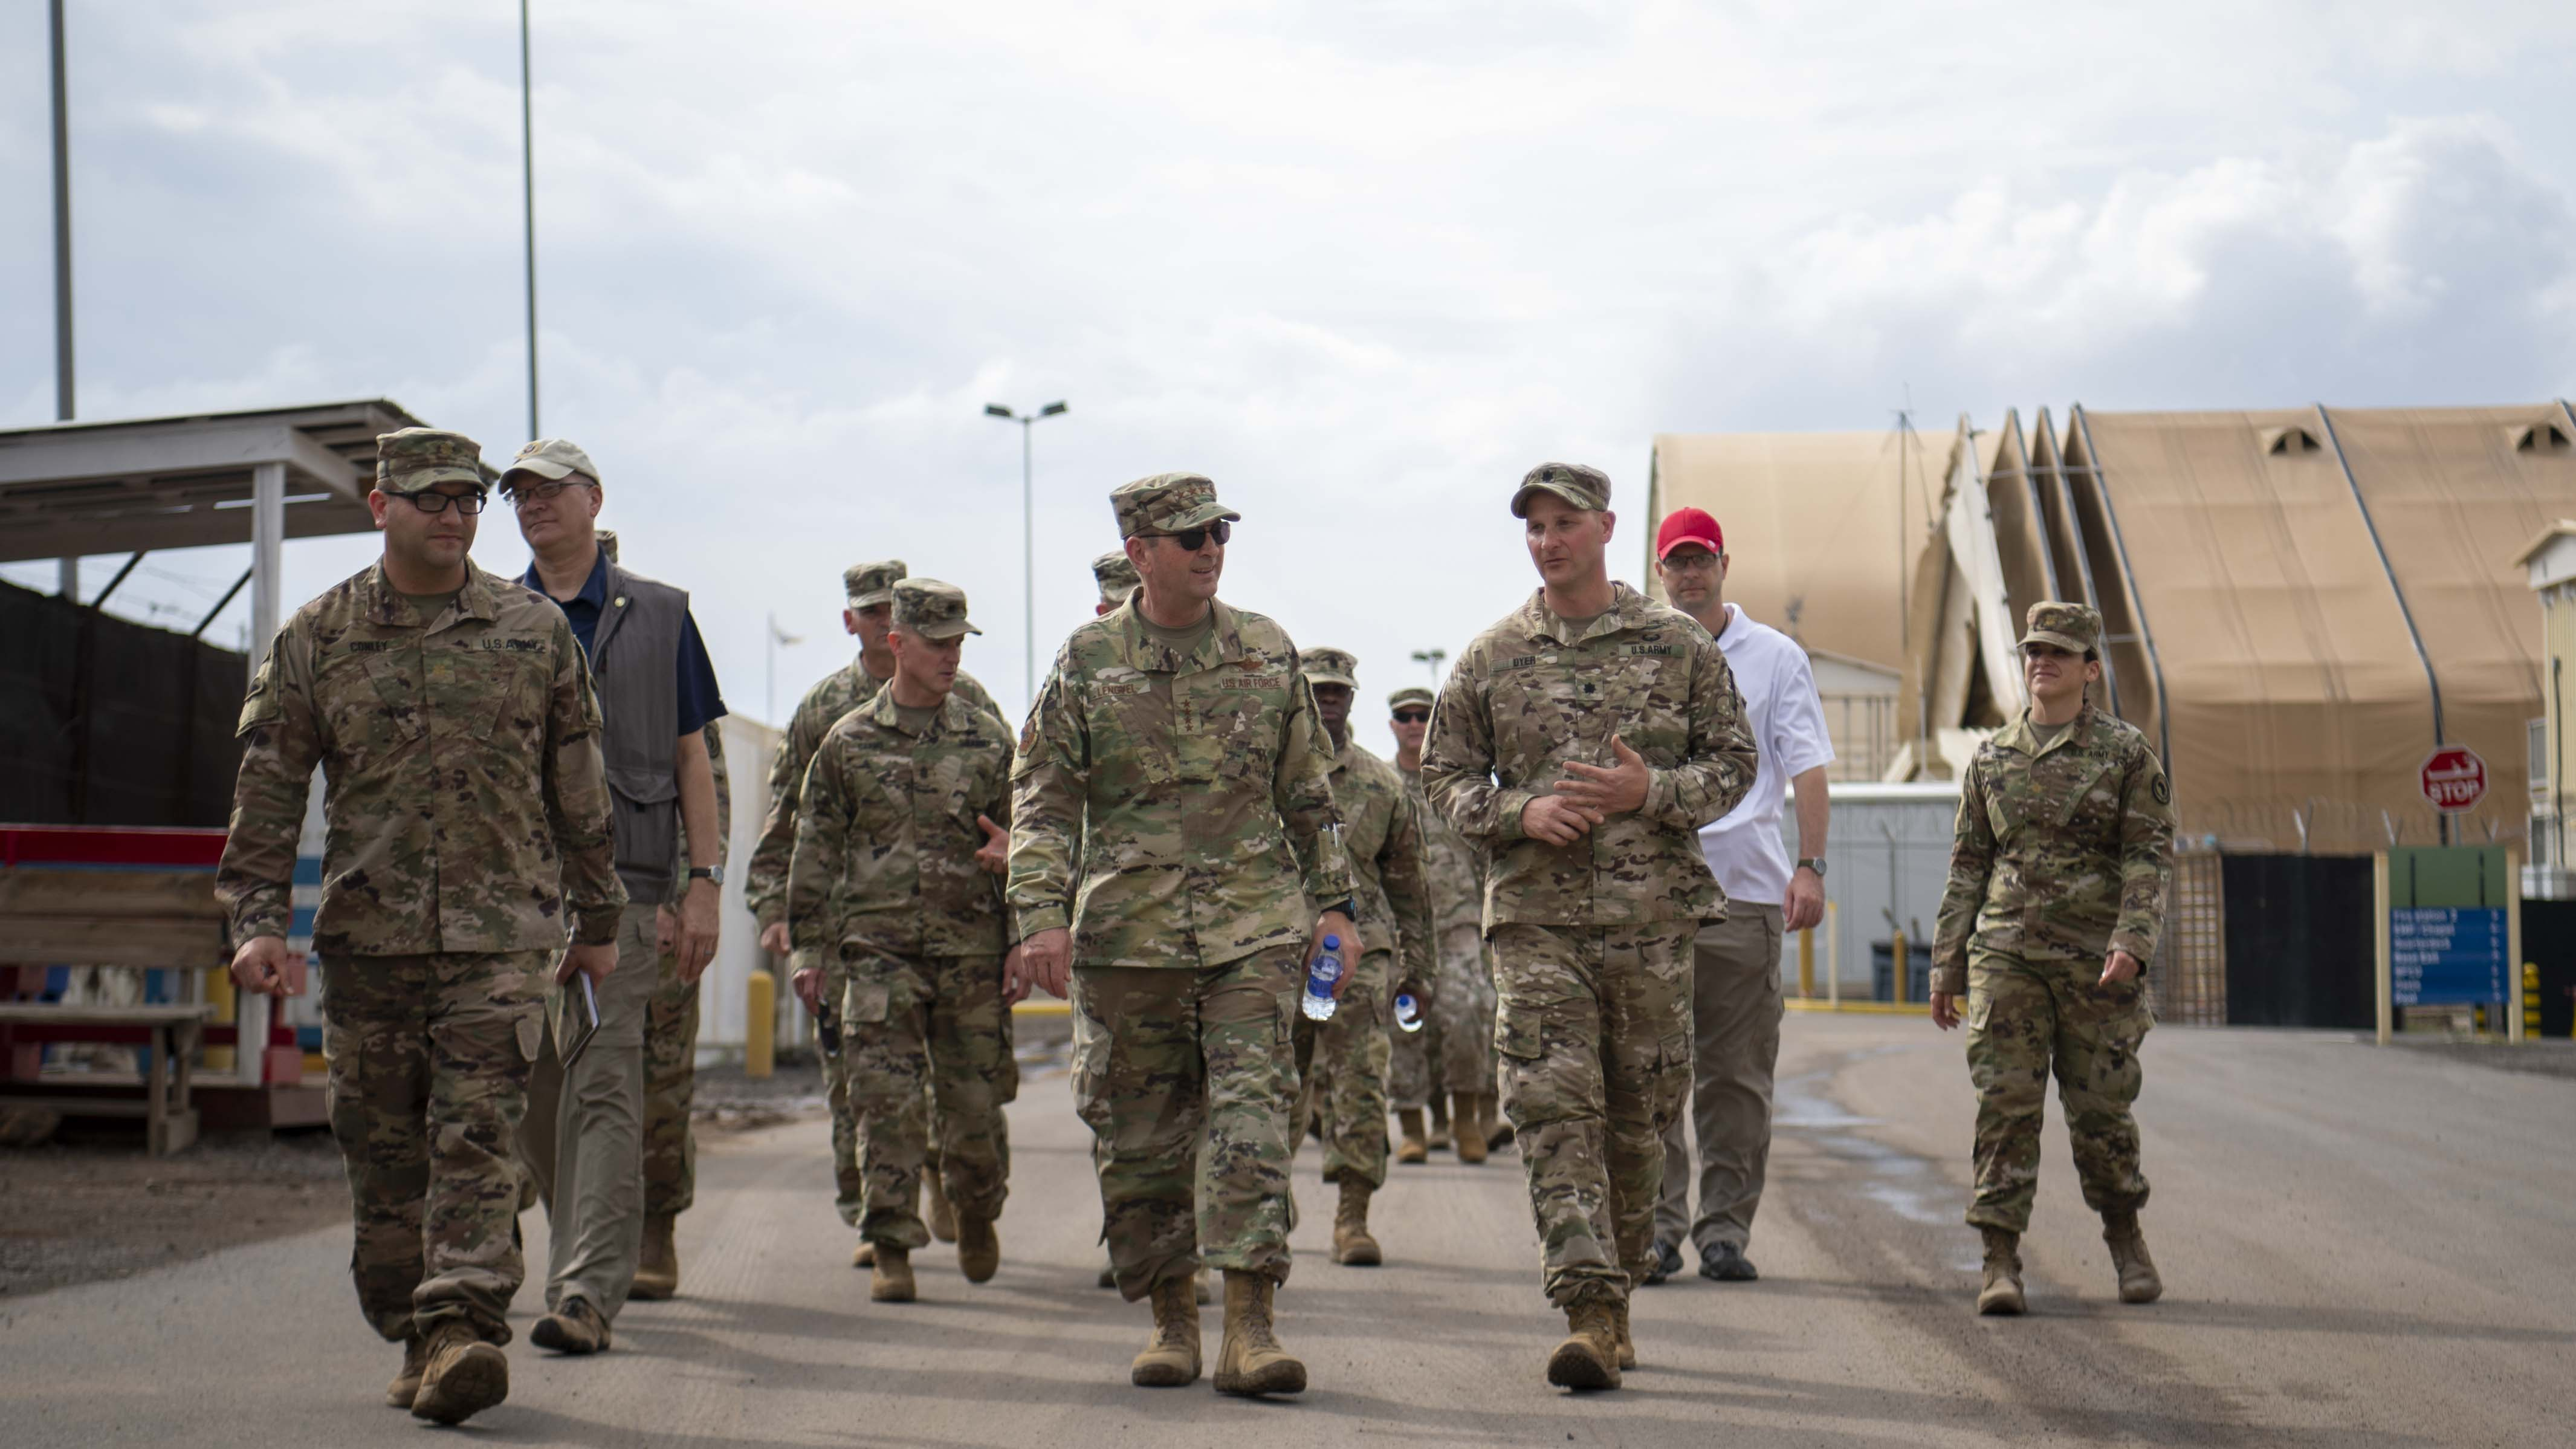 U.S. Air Force Gen. Joseph Lengyel, chief, National Guard Bureau, speaks to U.S. Army Lt. Col. Paul Dyer, commander, Task Force-Guardian, assigned to Combined Joint Task Force-Horn of Africa security forces at Camp Lemonnier, Djibouti, Nov. 28, 2019. Lengyel visited Camp Lemonnier to meet with deployed National Guardsmen and other service members. (U.S. Air Force photo by Staff Sgt. J.D. Strong II)